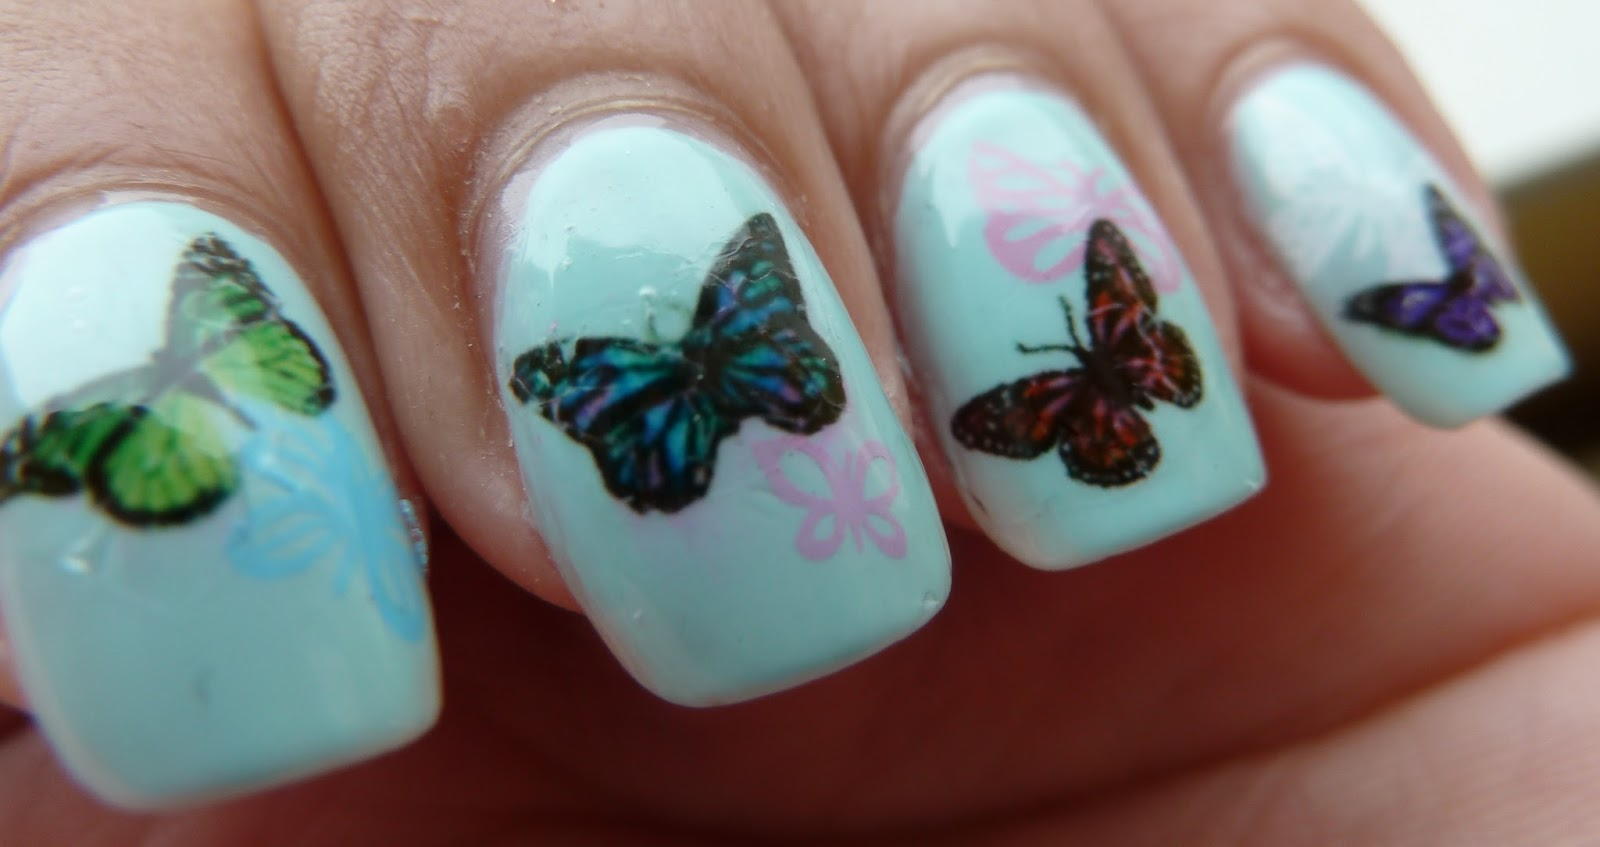 NailsByStephanie: How To Use Waterslide Decals